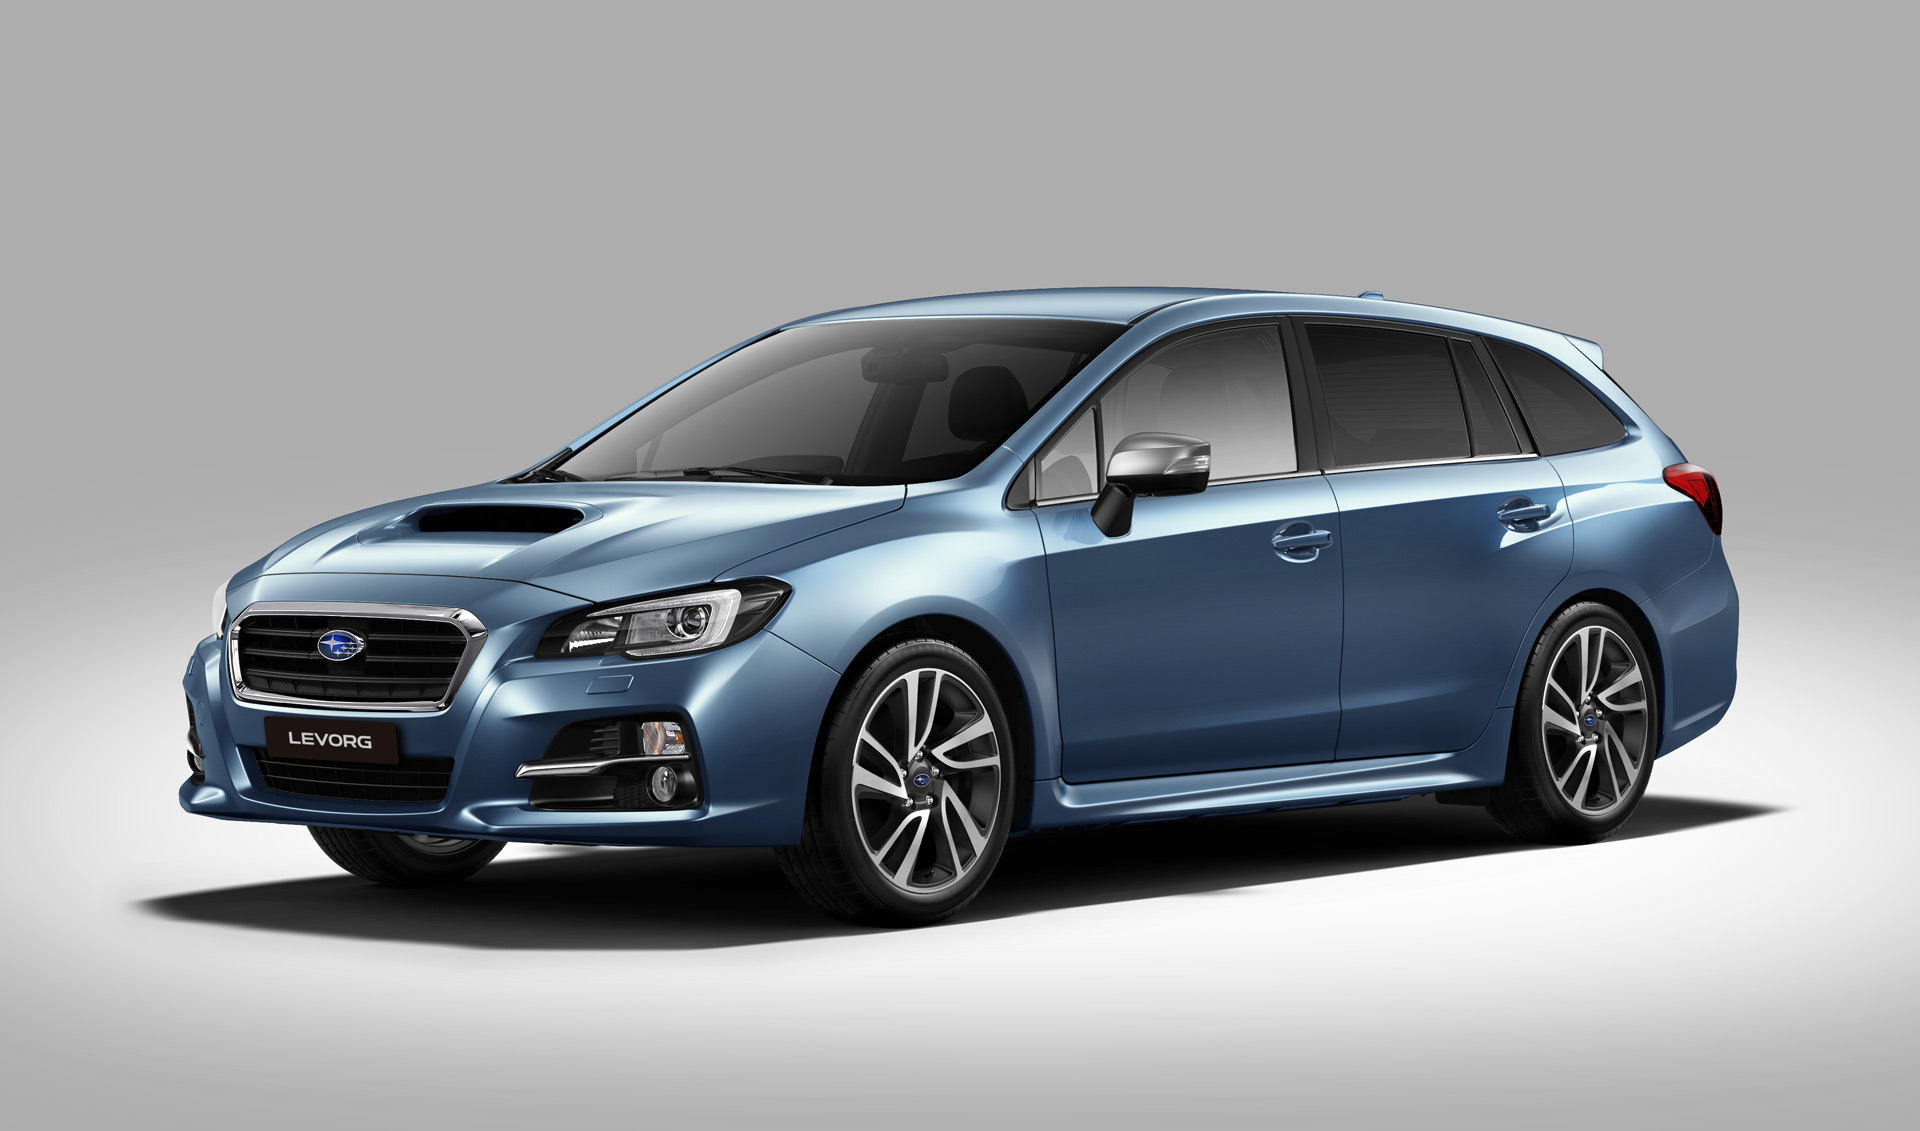 subaru confirms levorg and crosstrek hybrid sti concepts for 2016 tokyo auto salon. Black Bedroom Furniture Sets. Home Design Ideas